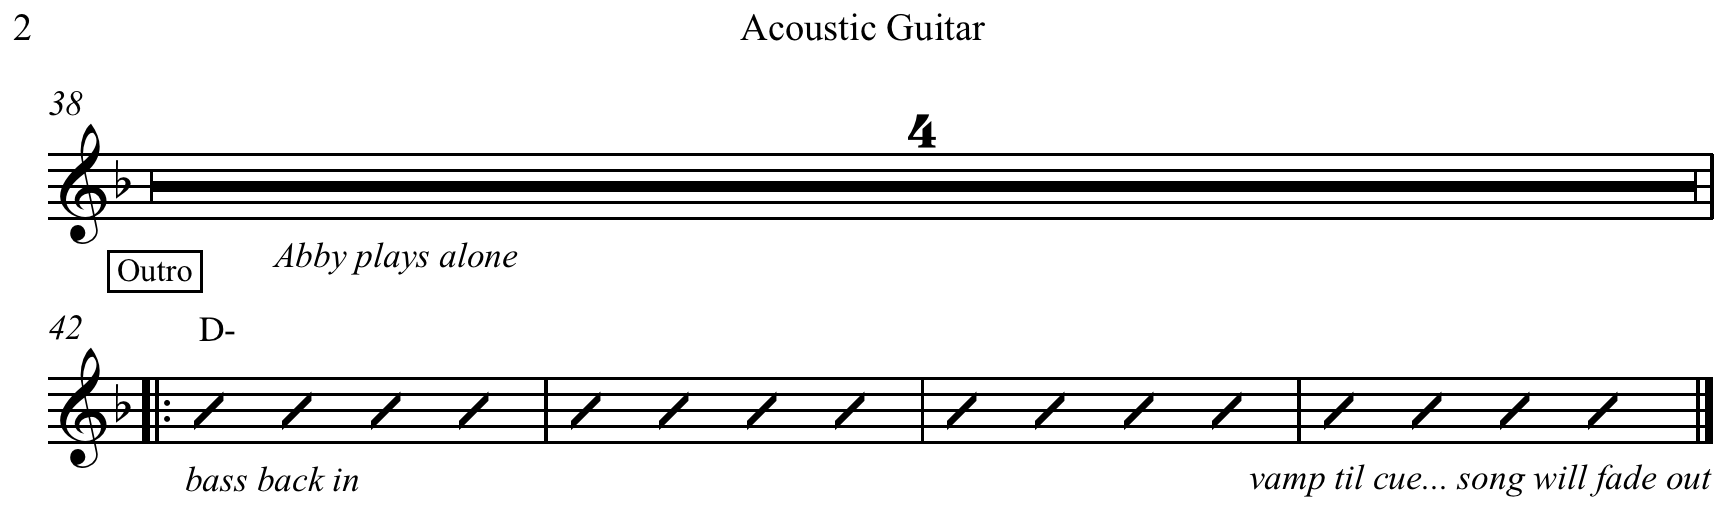 A Basic Guitar Chord Chart Example 2